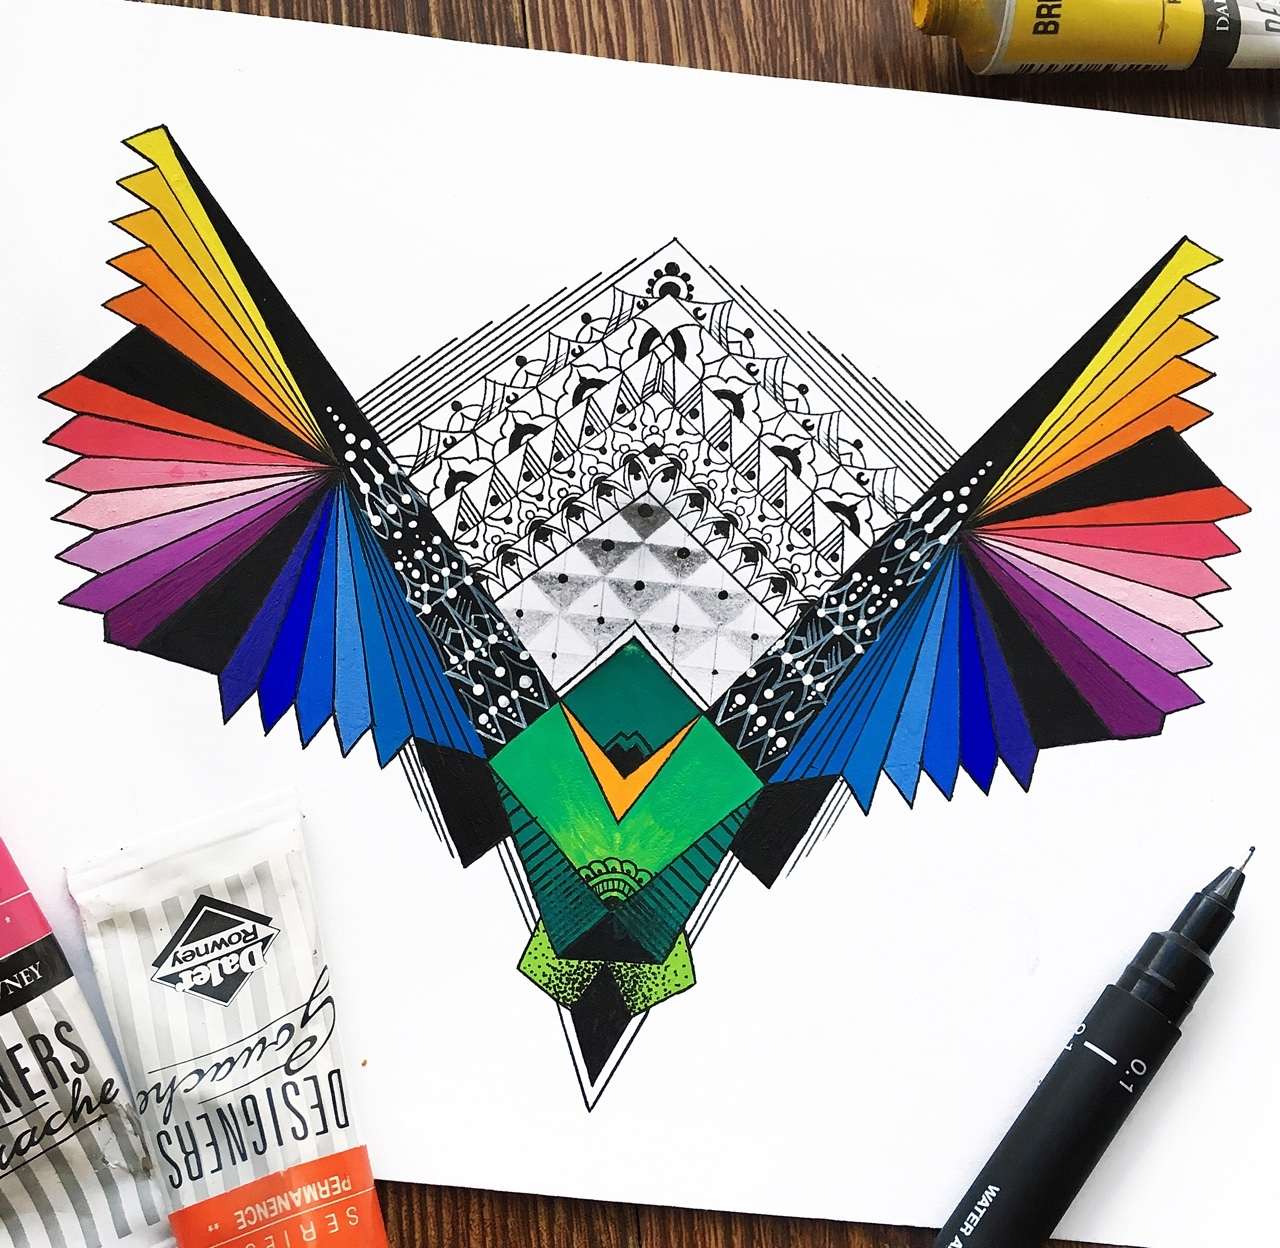 16-Spread-your-wings-and-fly-Dilrani-Kauris-Symmetry-and-Style-in-Mandala-and-Mehndi-Drawings-www-designstack-co